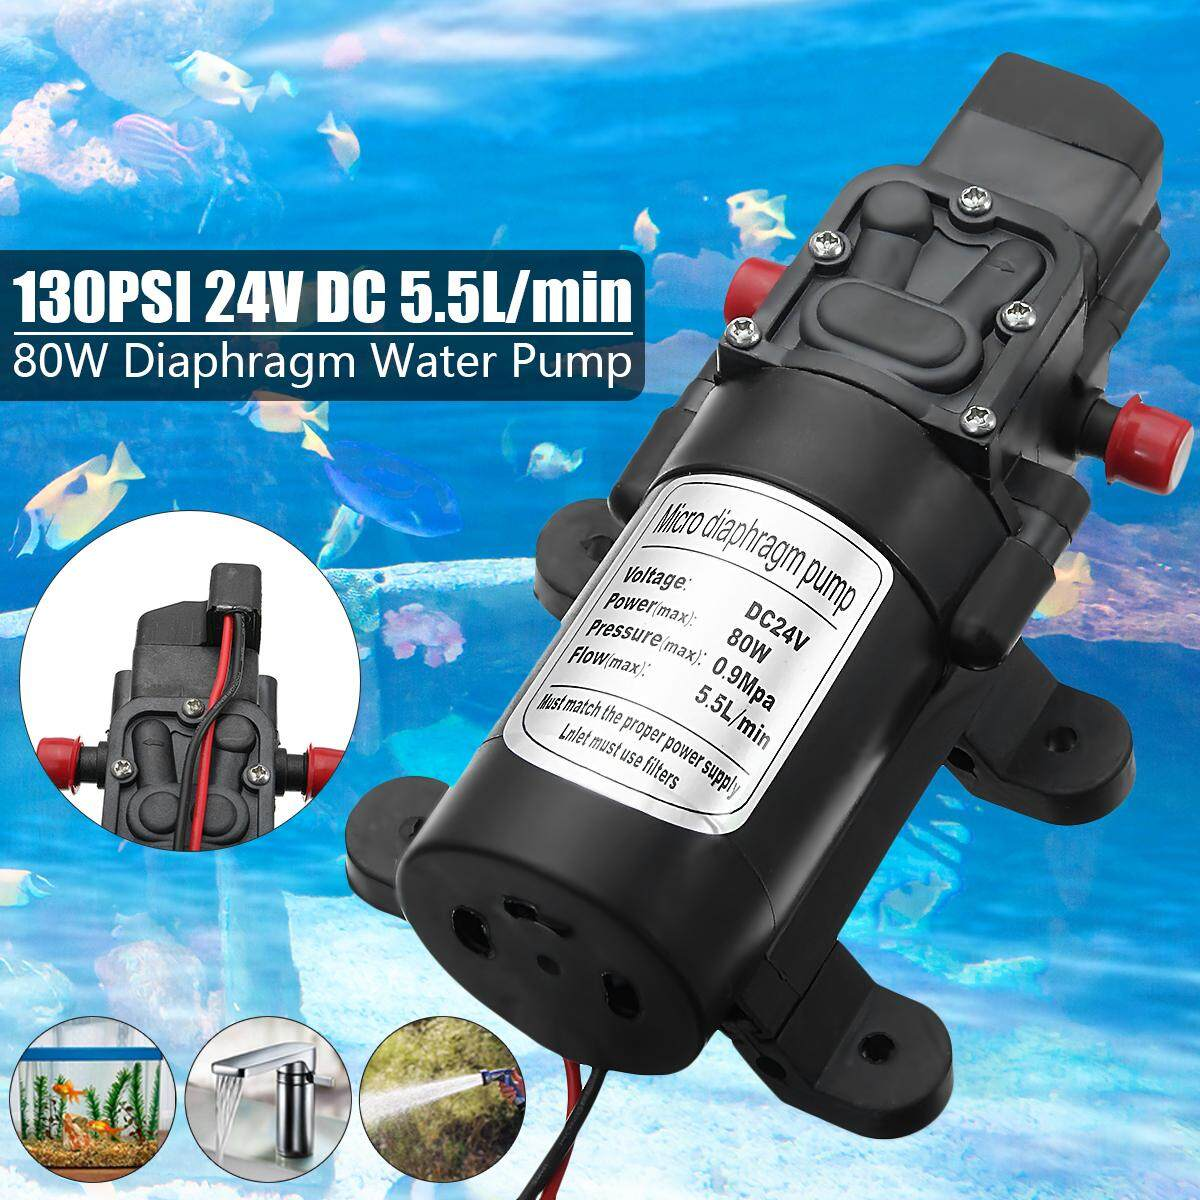 Buy Sell Cheapest Pressure Switch Automatic Best Quality Product Otomatis Angin Kompresor 4 Lubang 3 Cabang Tabung Diy 24v Dc 55l Min 130psi 80w High Diaphragm Water Pump